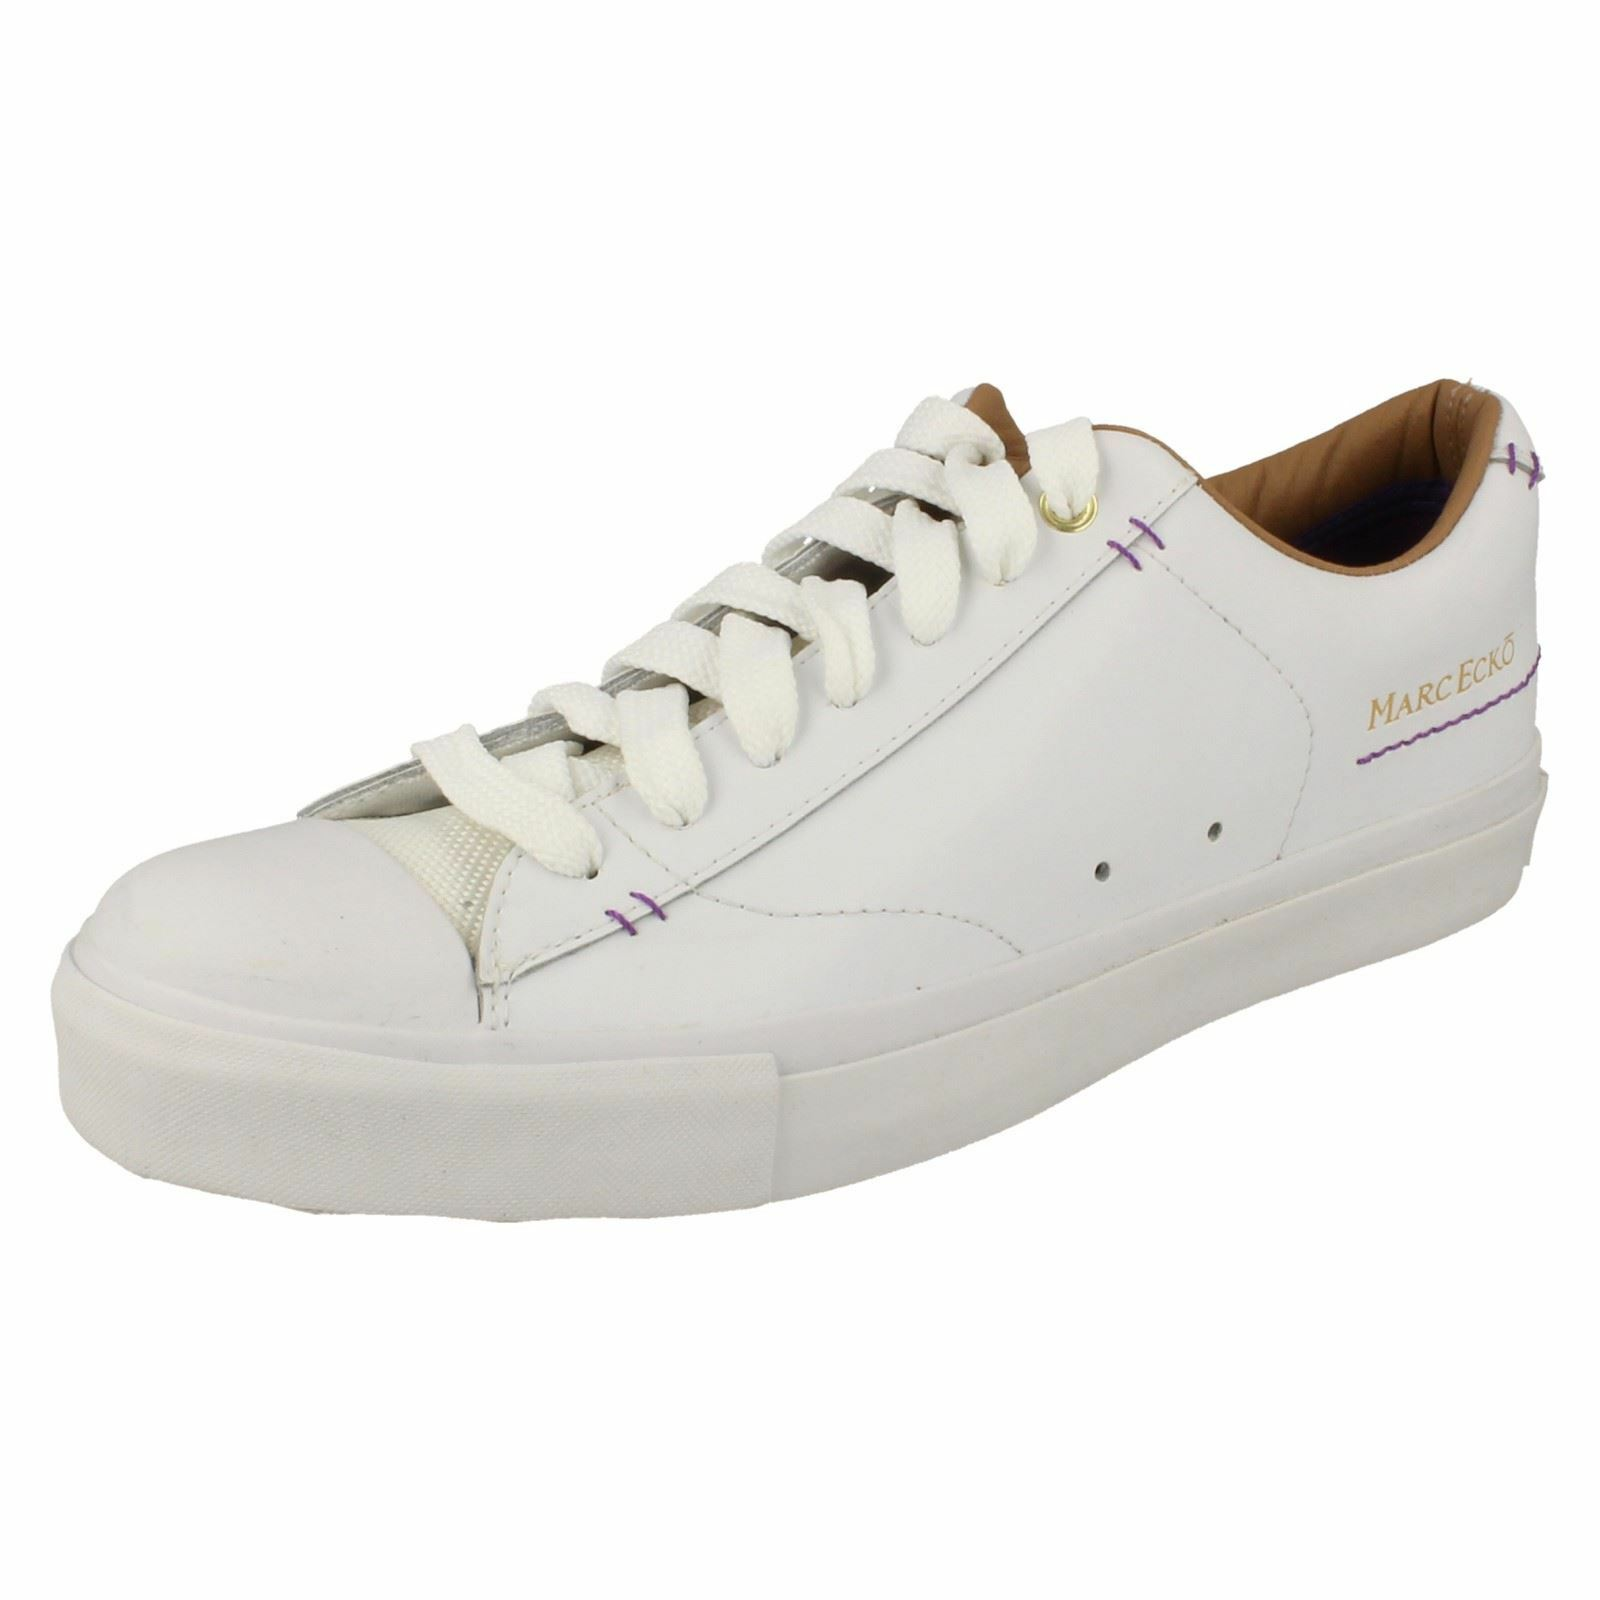 Mens Marc Ecko Casual Lace Up Trainers 'Ark'